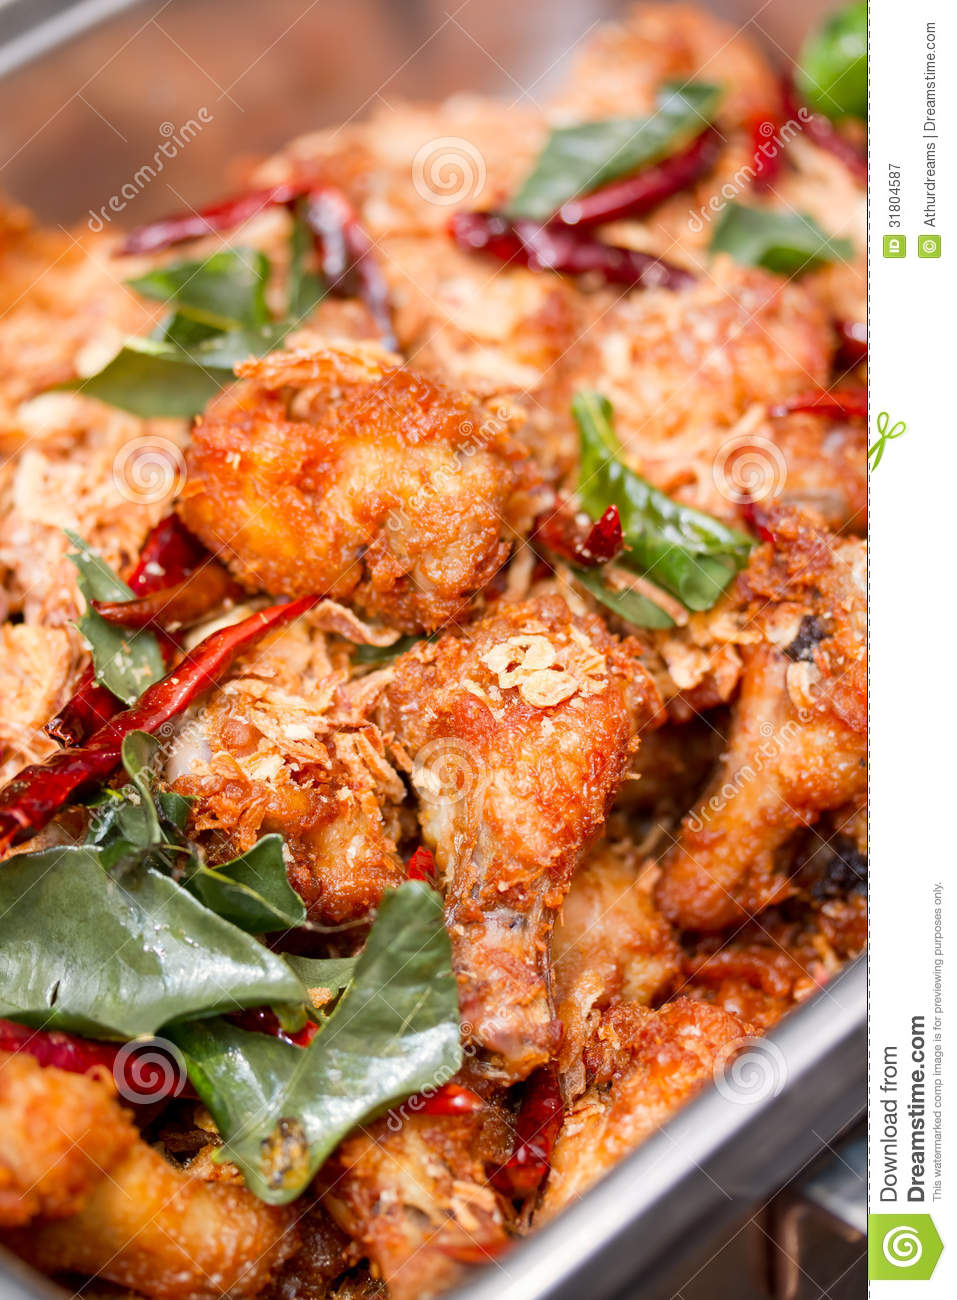 Close Up Of Deep Fried Chicken Wing With Thai Herbs Royalty Free Stock ...